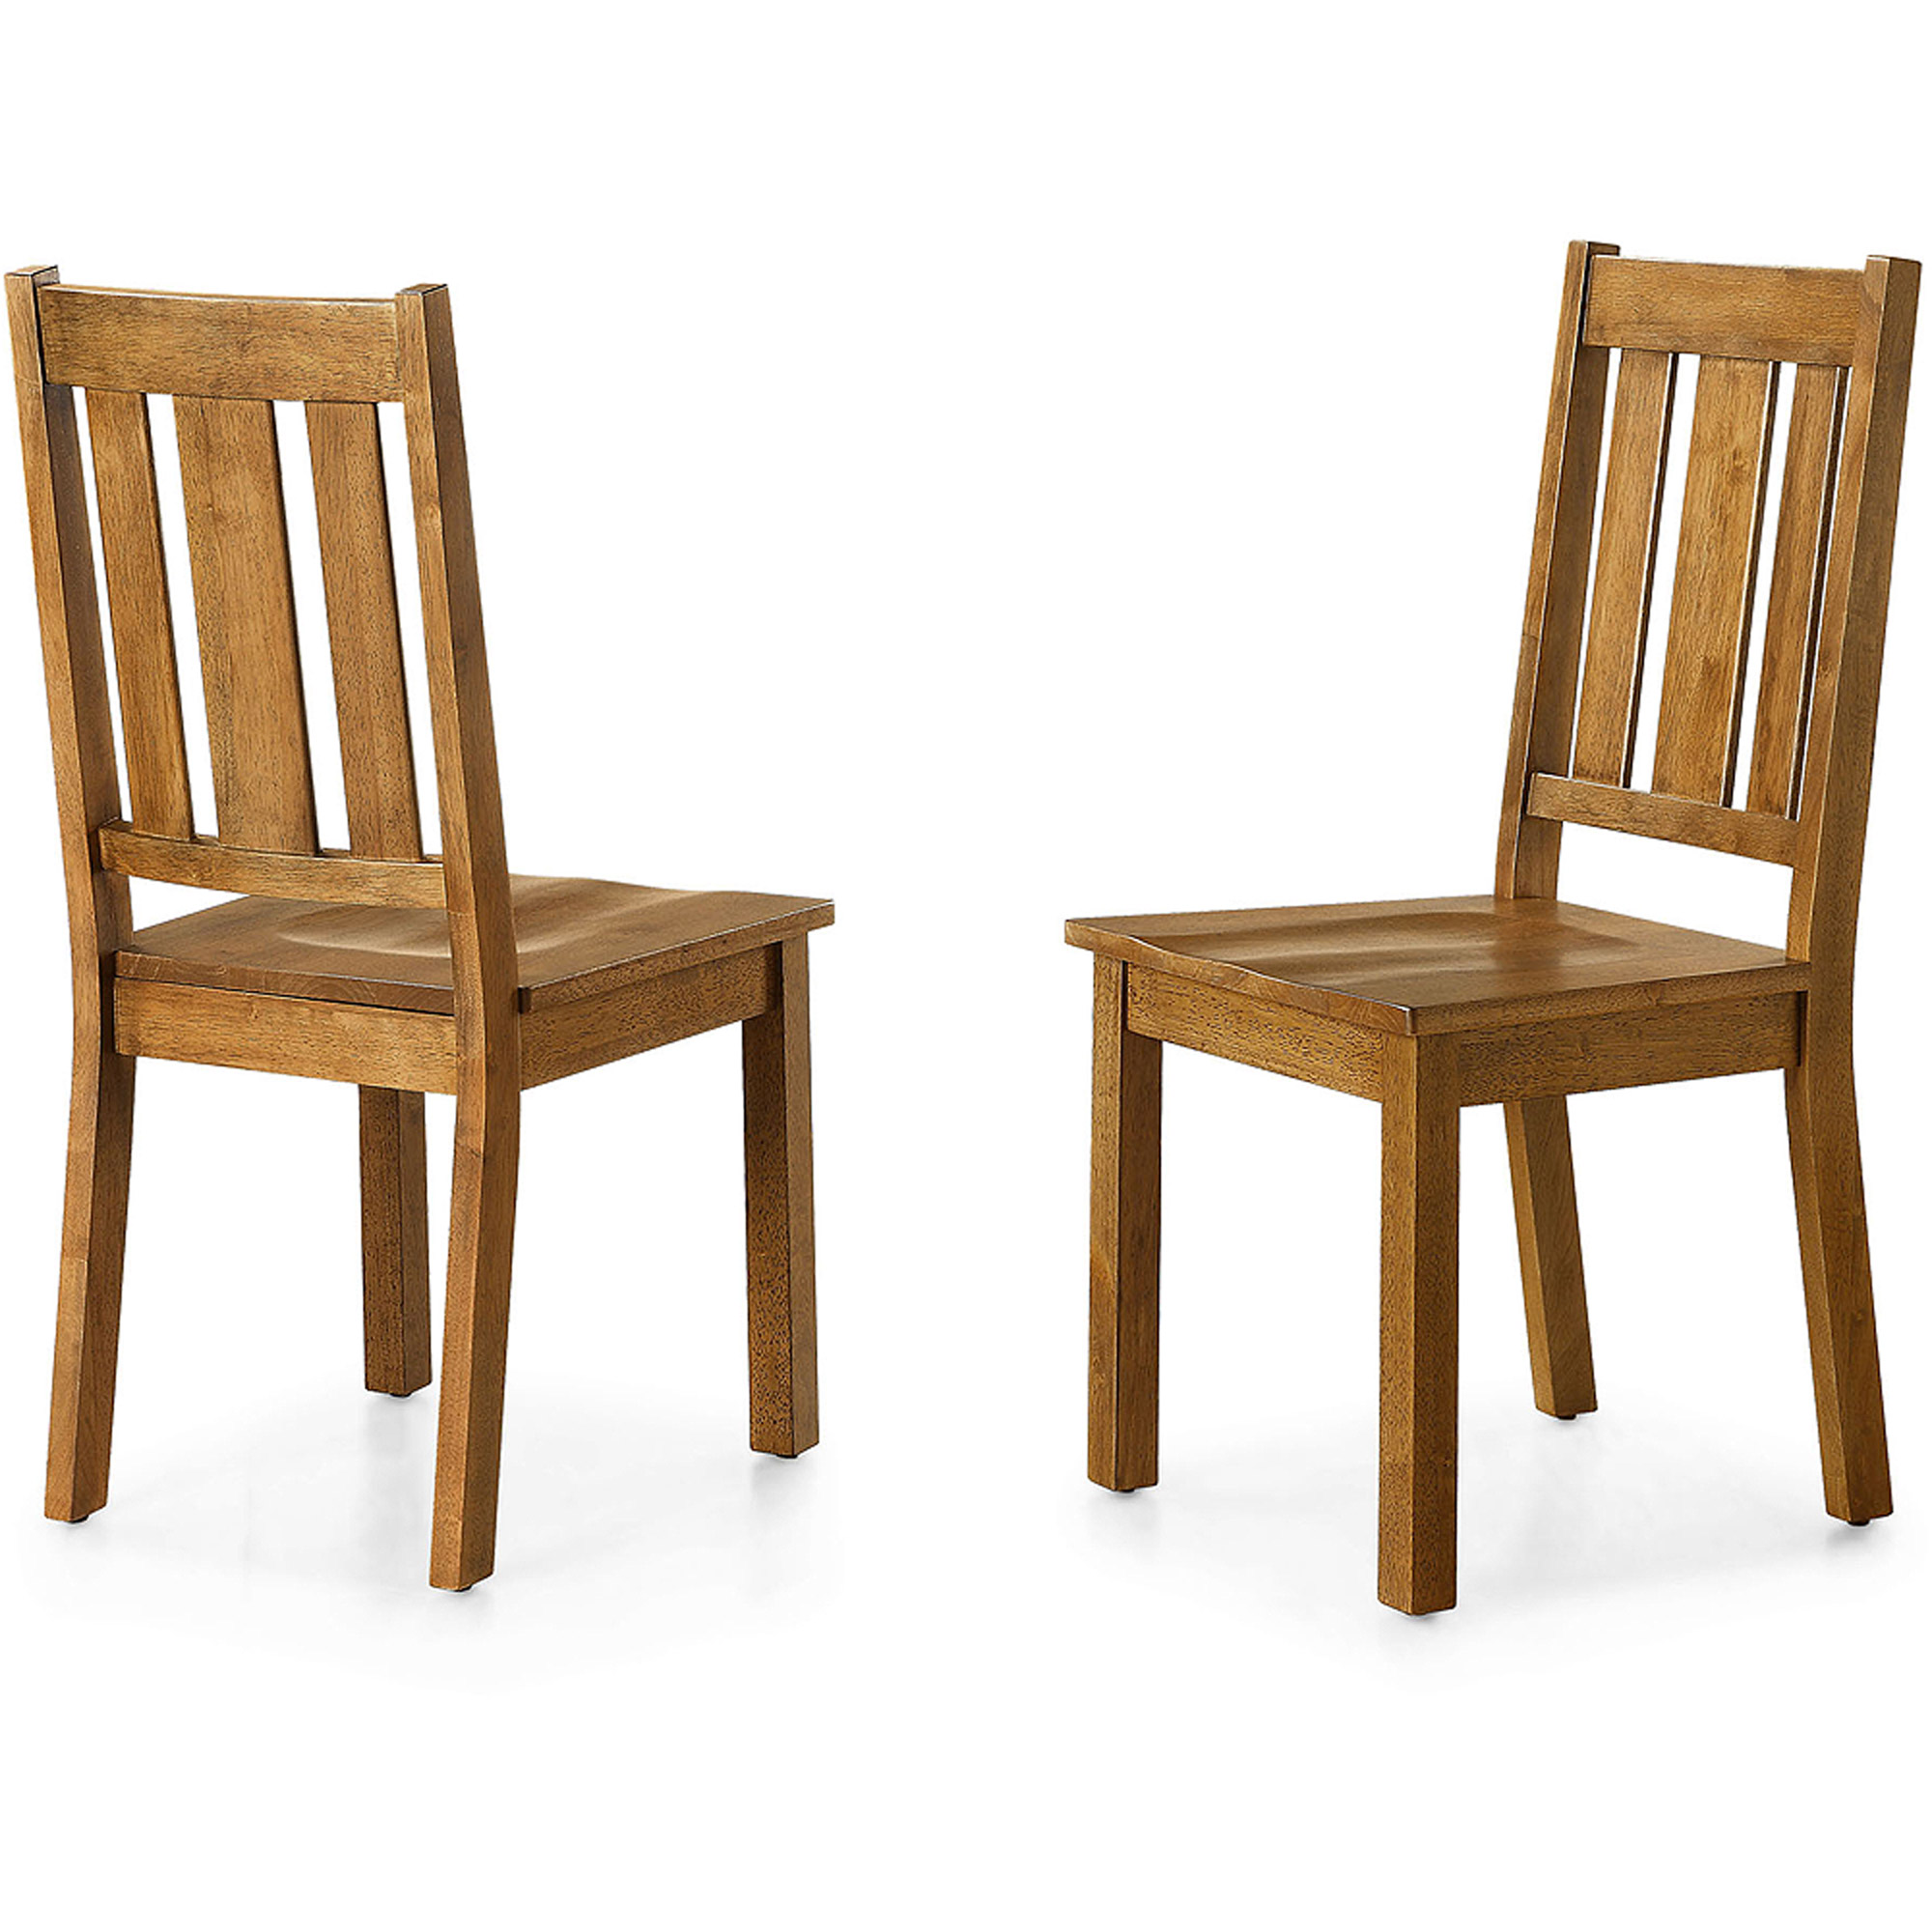 wooden chairs pictures rocking chair crib better homes and gardens bankston dining set of 2 honey